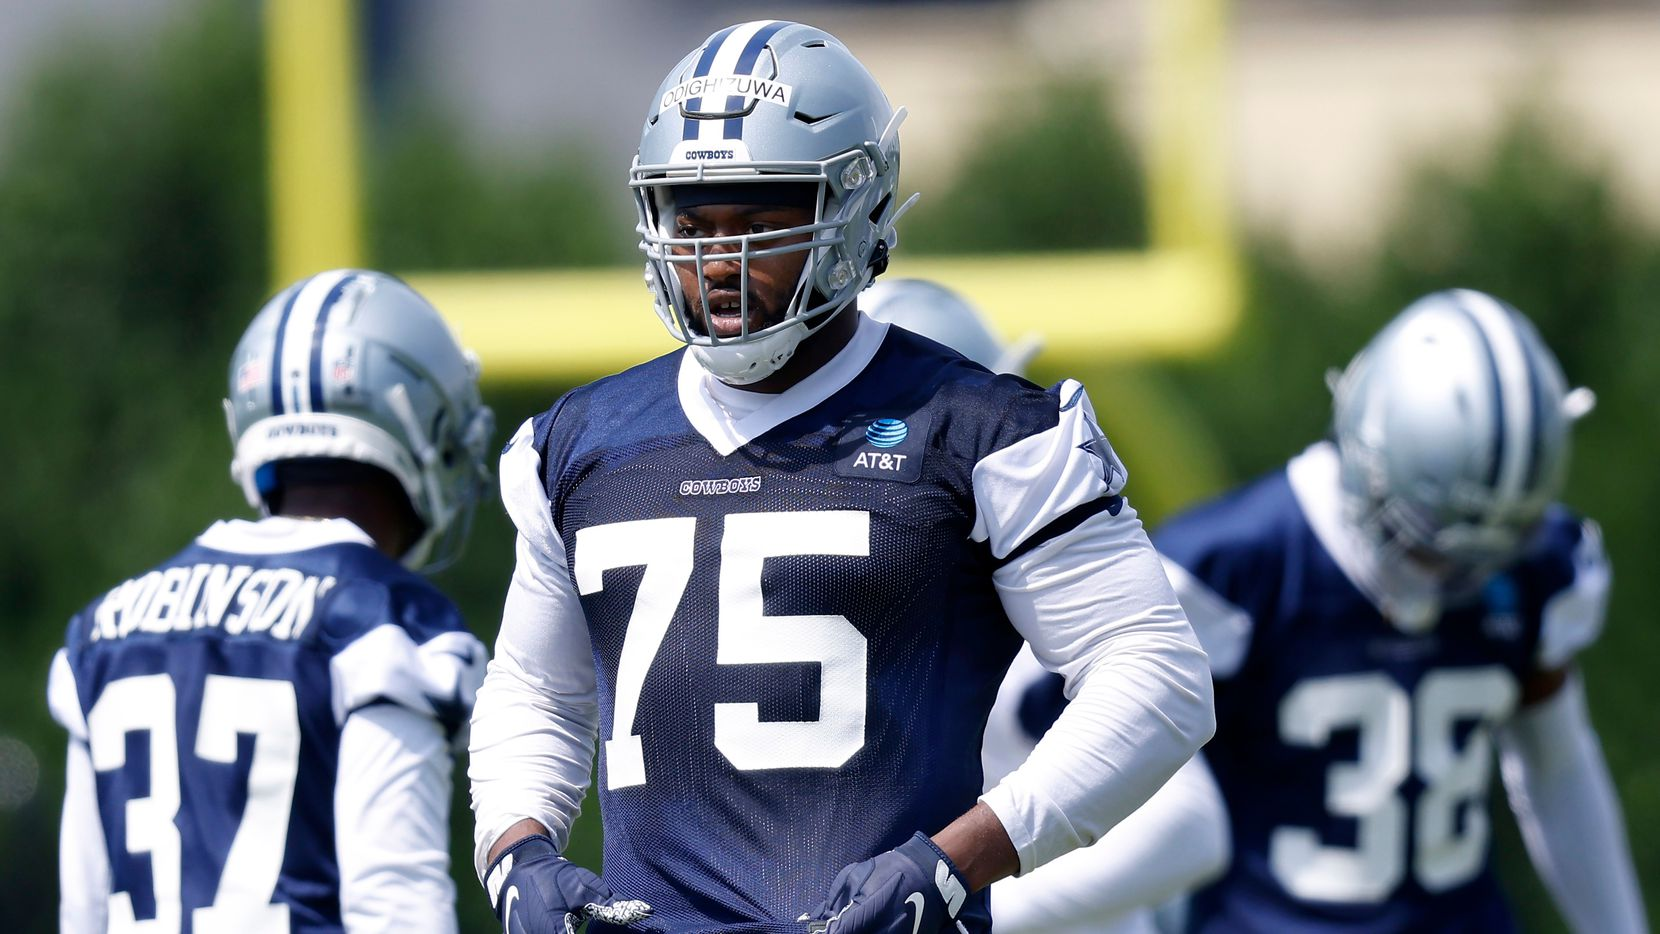 Dallas Cowboys rookie defensive tackle Osa Odighizuwa (75) waits to run another play during team drills at rookie minicamp at The Star in Frisco, Texas, Saturday, May 15, 2021. (Tom Fox/The Dallas Morning News)